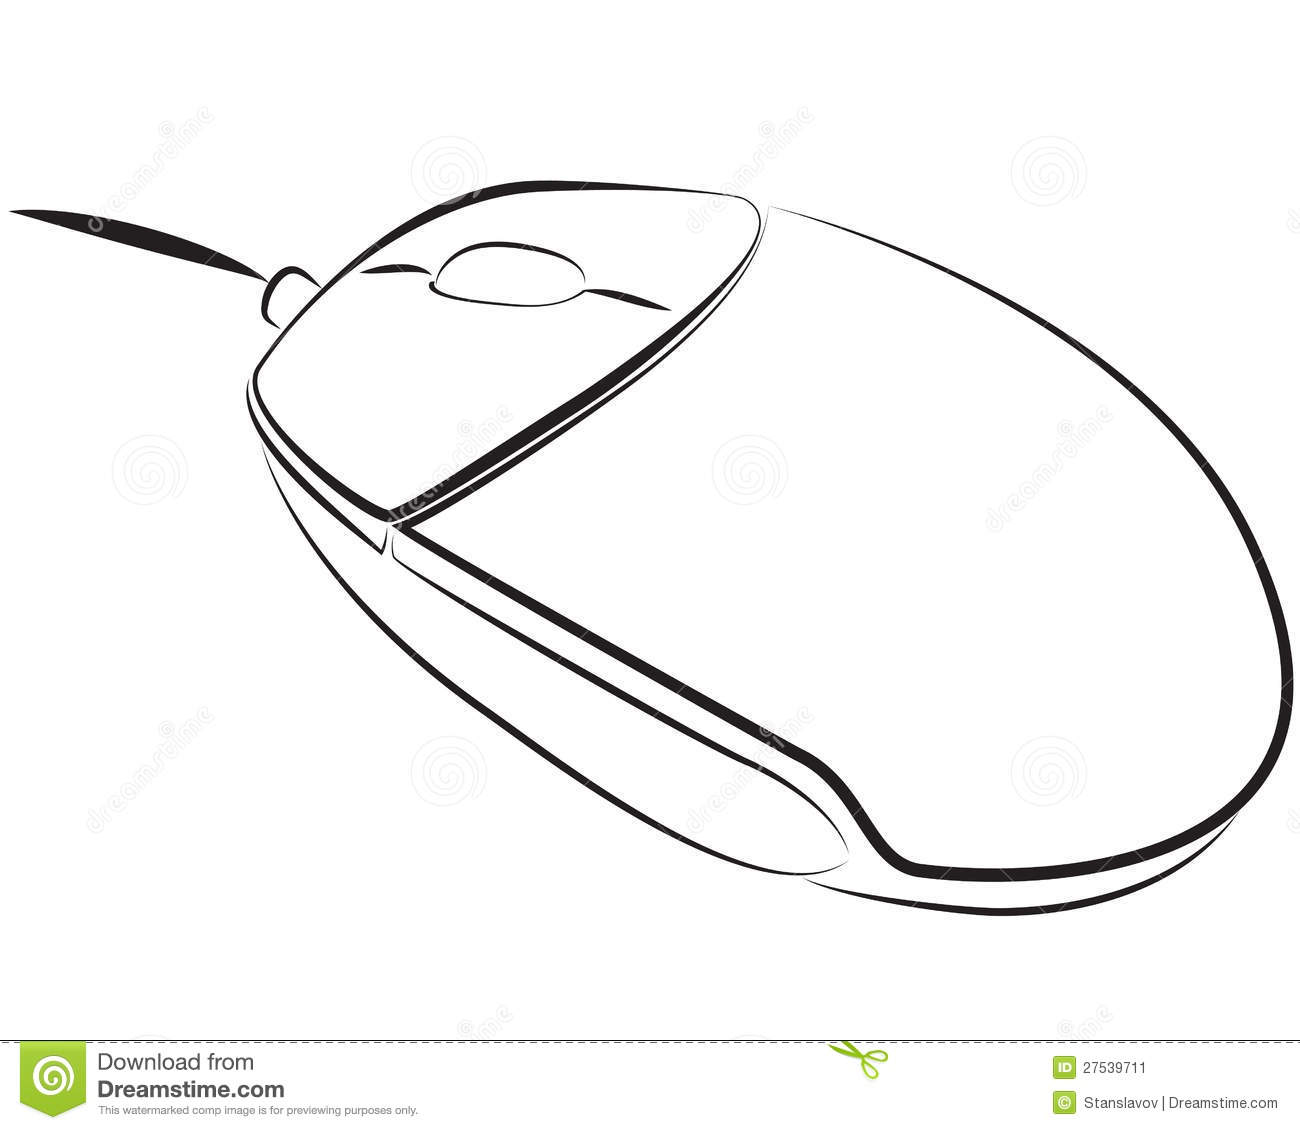 Pc mouse stock illustration. Illustration of order